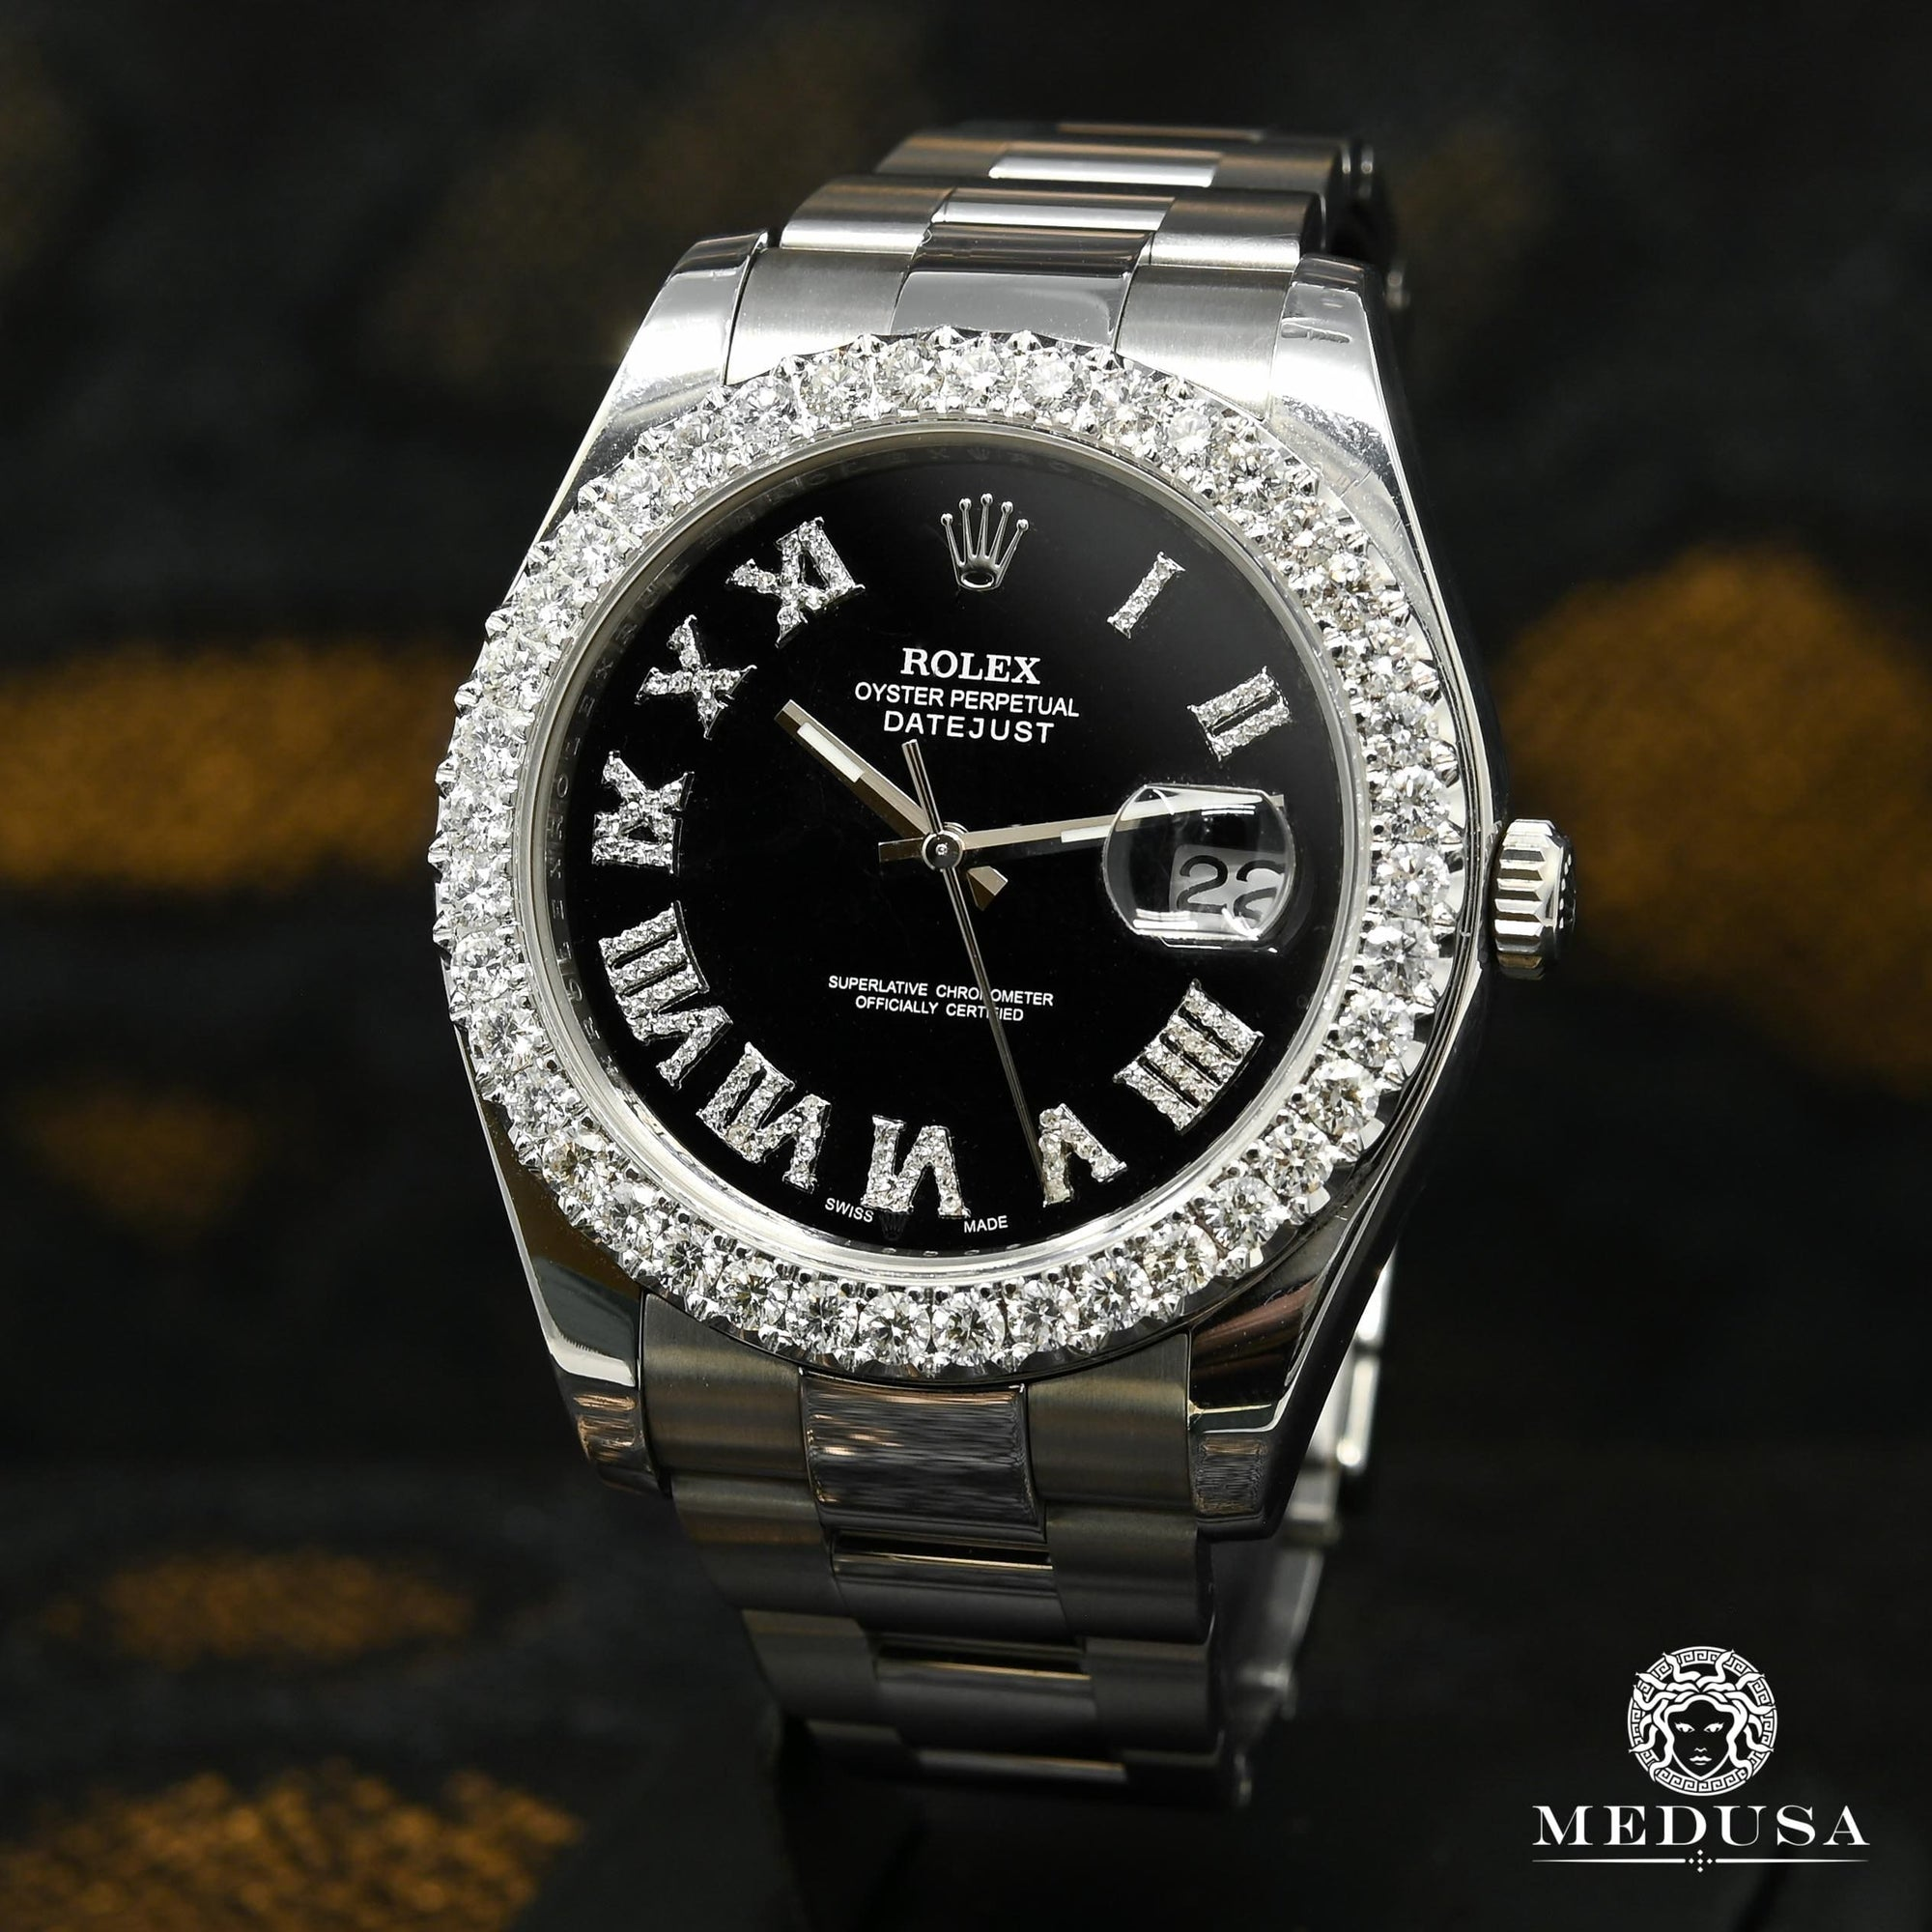 Rolex Datejust 41mm - Black Romain Iced